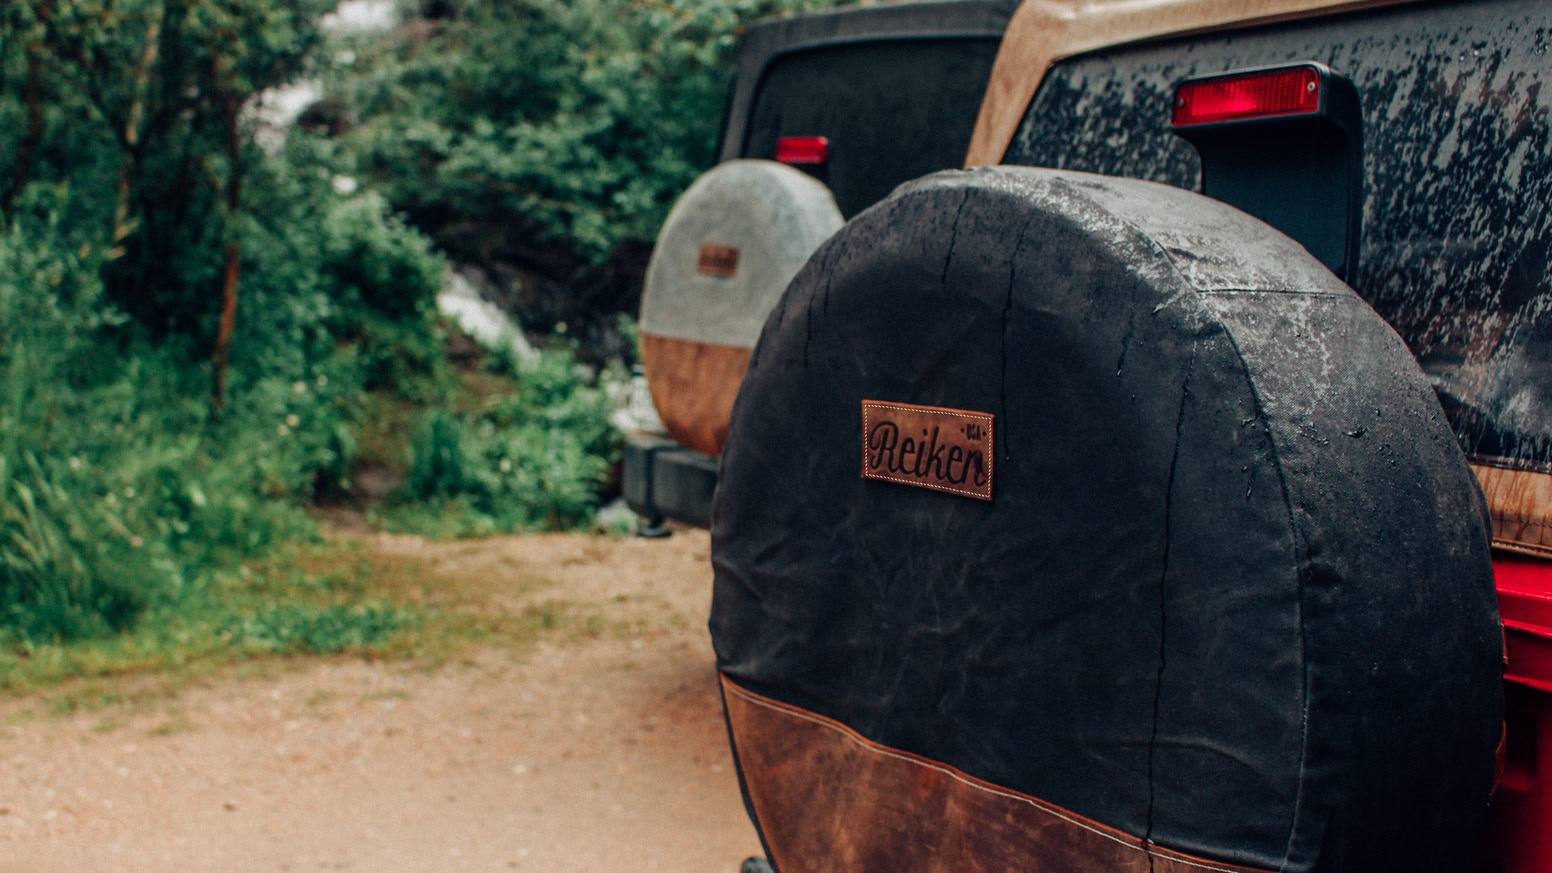 Uniquely designed with both style and durability in mind, Reiken Tire Covers set your off-road vehicle apart from the competition.